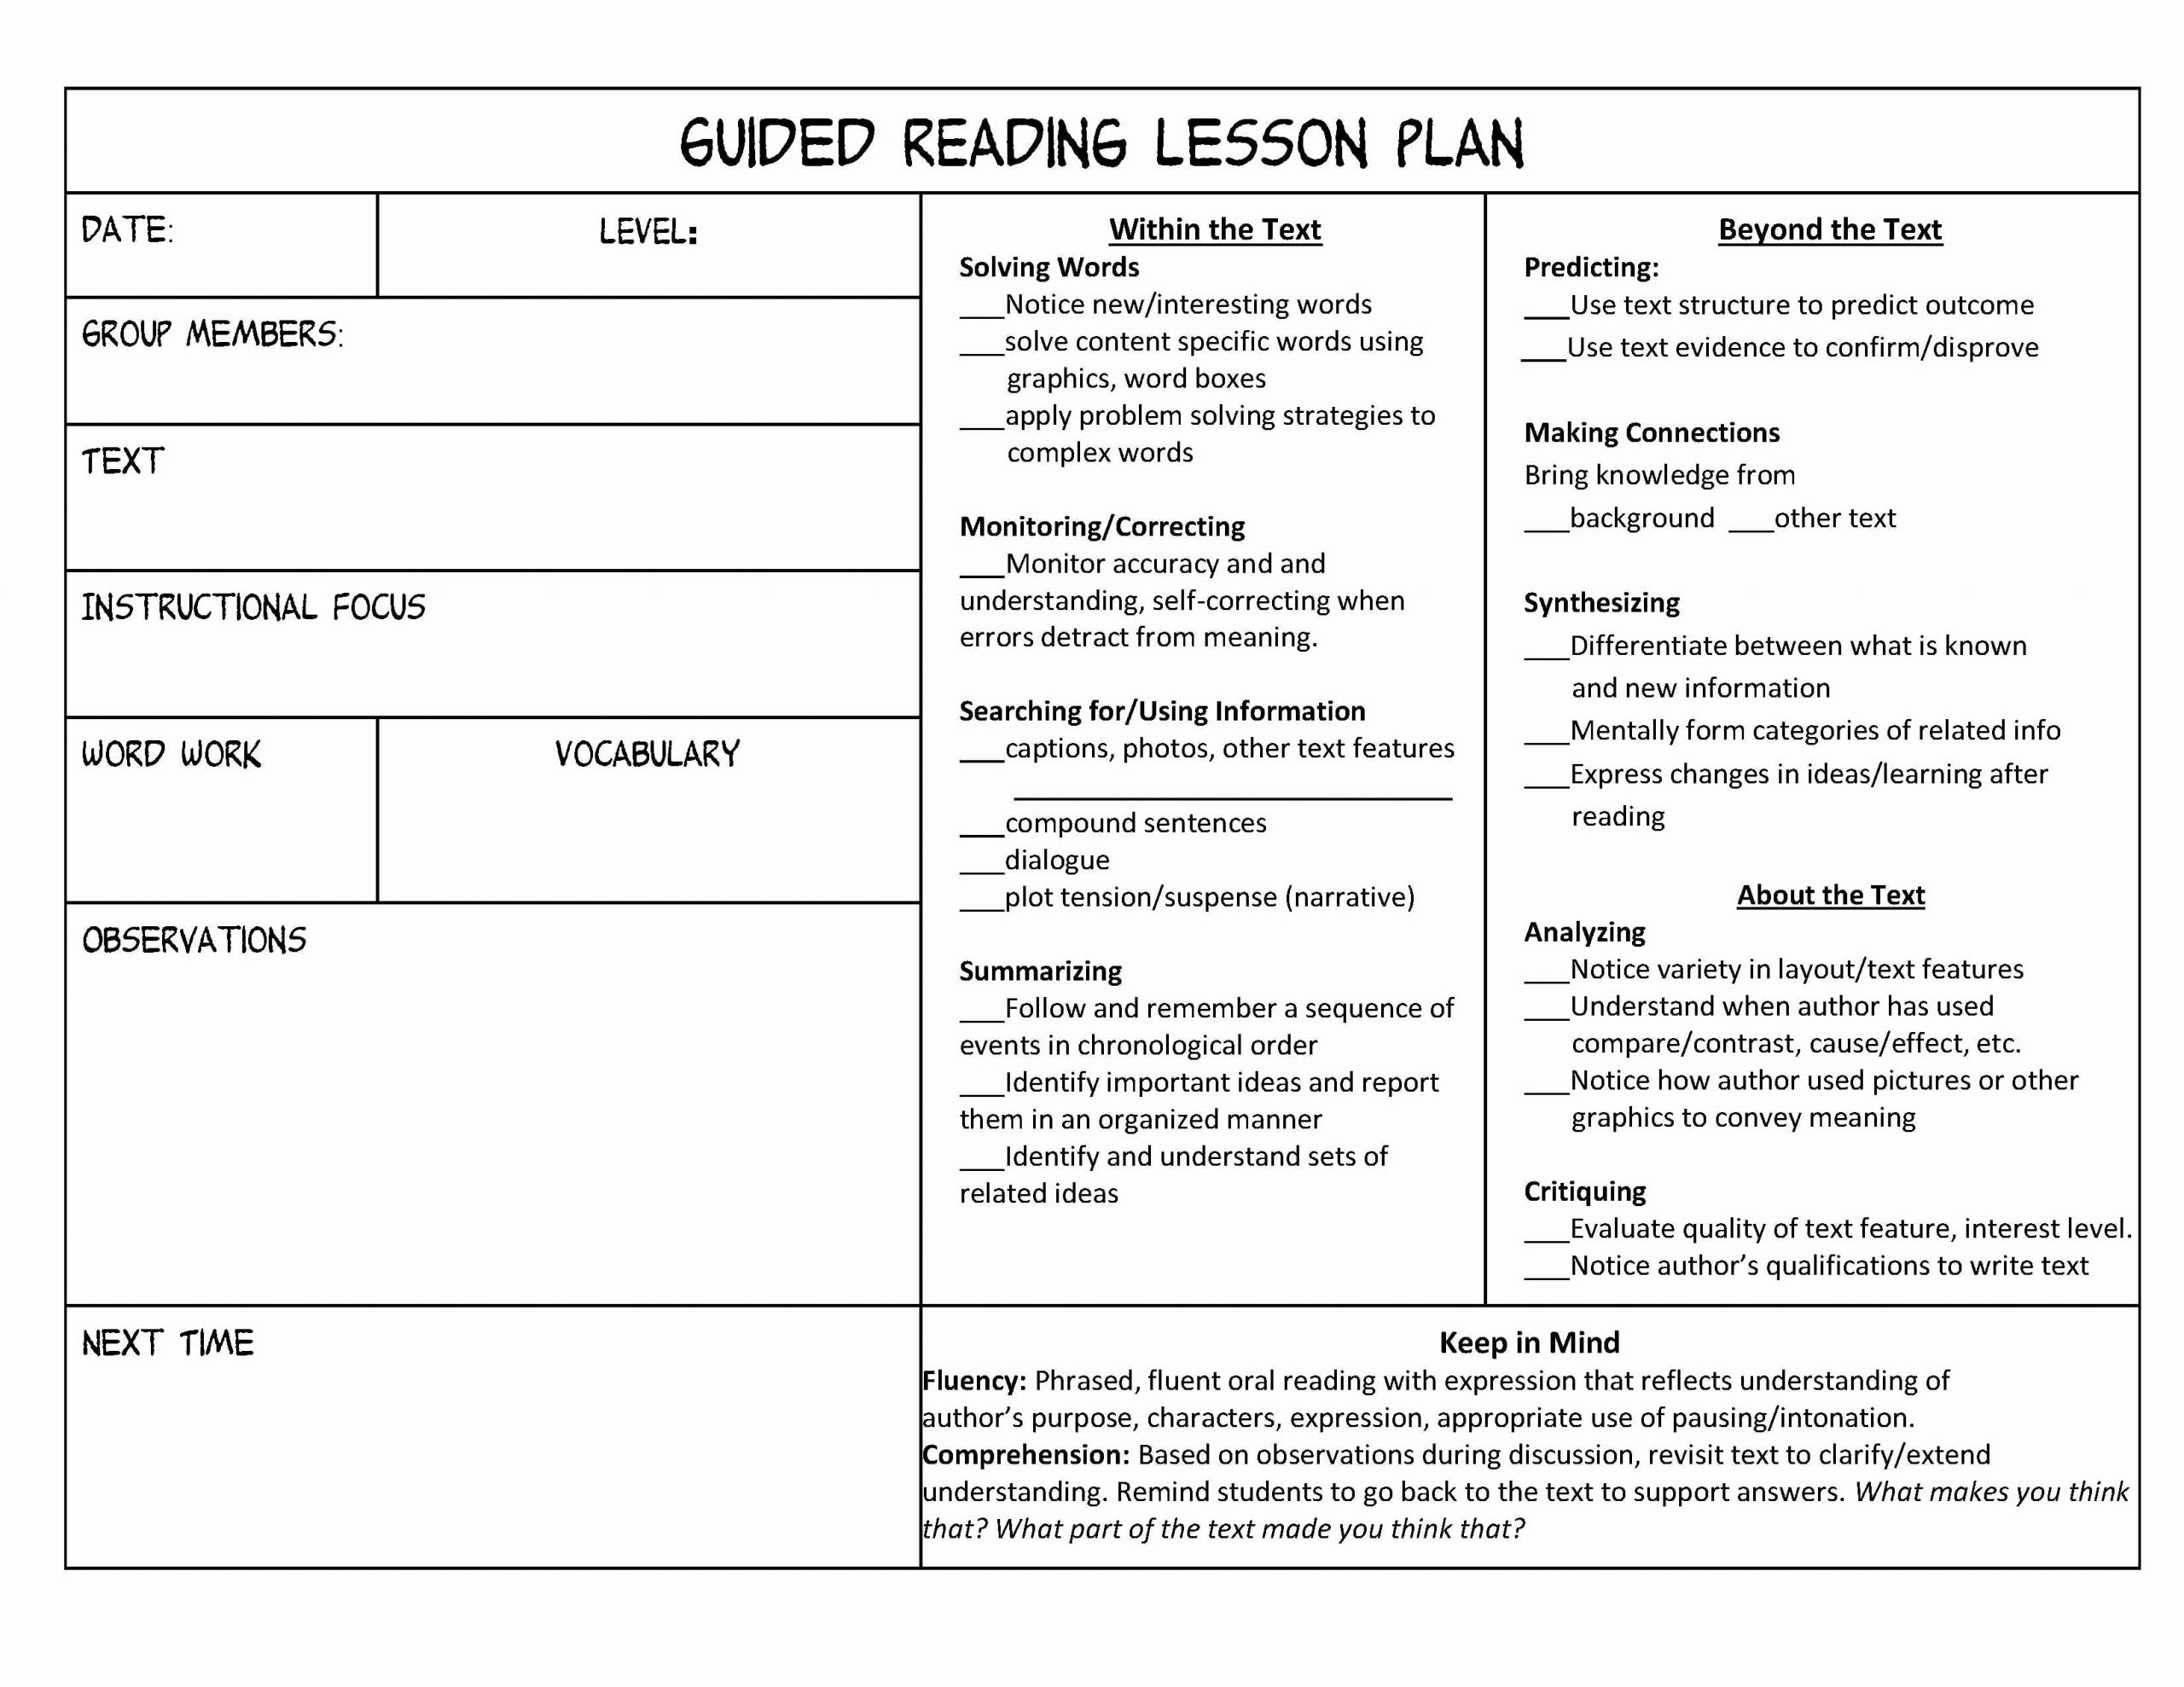 Literacy Lesson Plan Template Unique Tips for Getting Your Guided Reading Groups Started